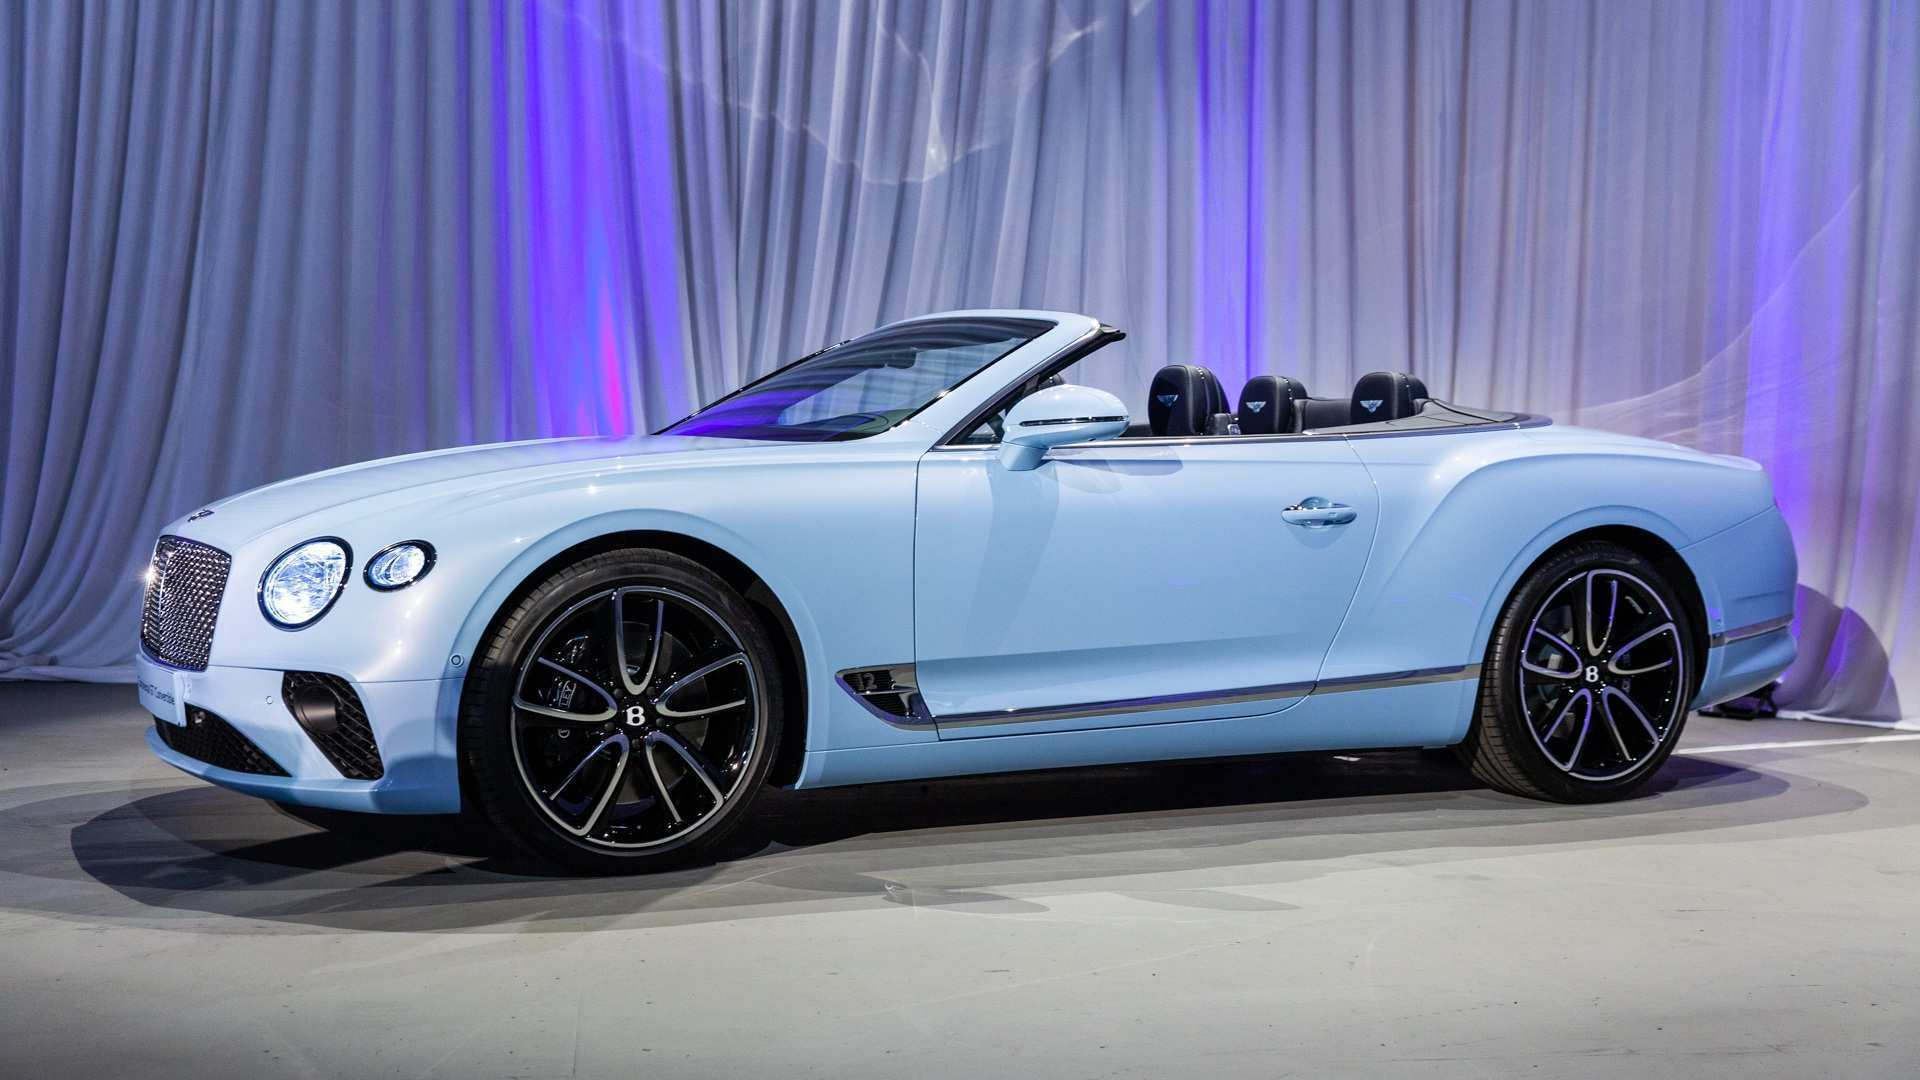 14 Concept of 2020 Bentley Gt Configurations by 2020 Bentley Gt